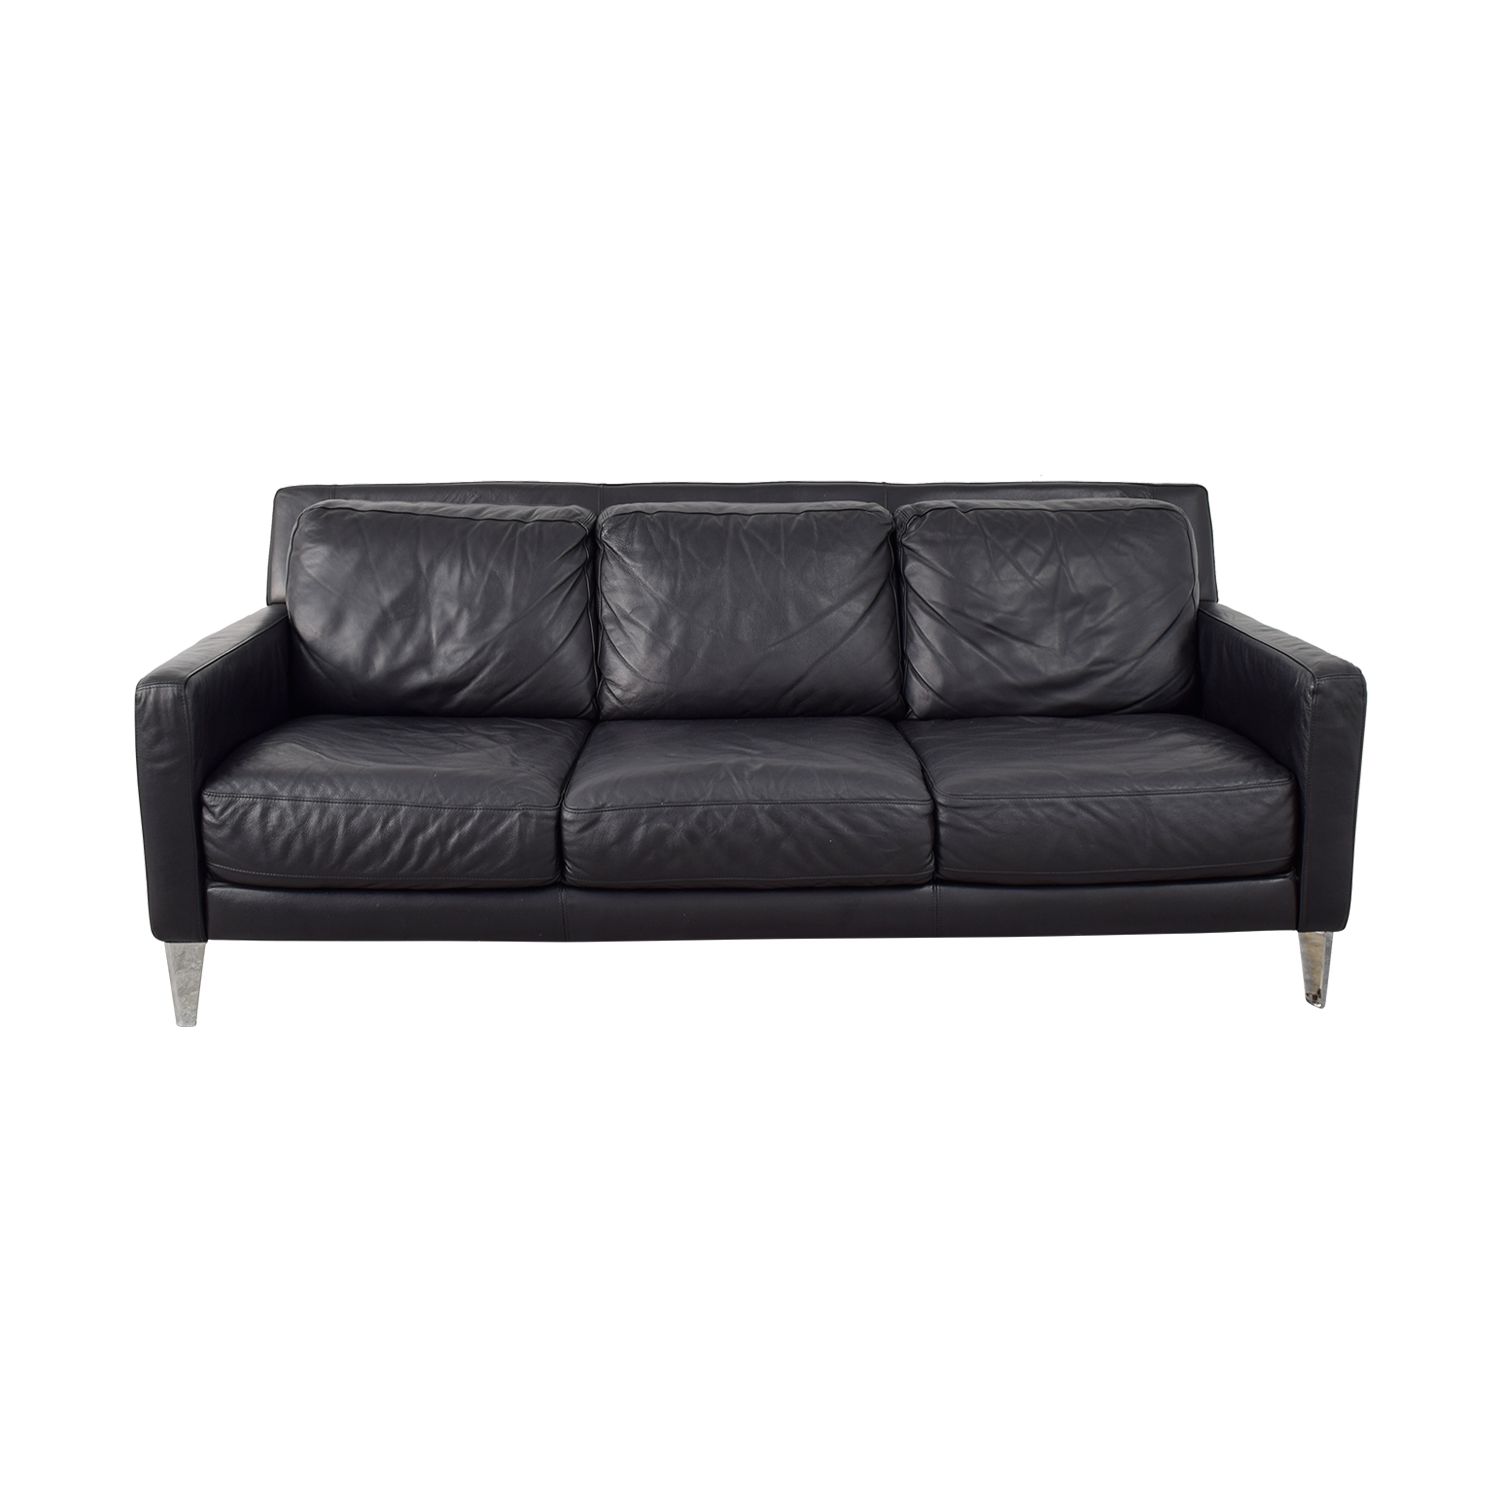 Bloomingdale's Bloomingdale's Black Italian Leather Three-Cushion Sofa for sale